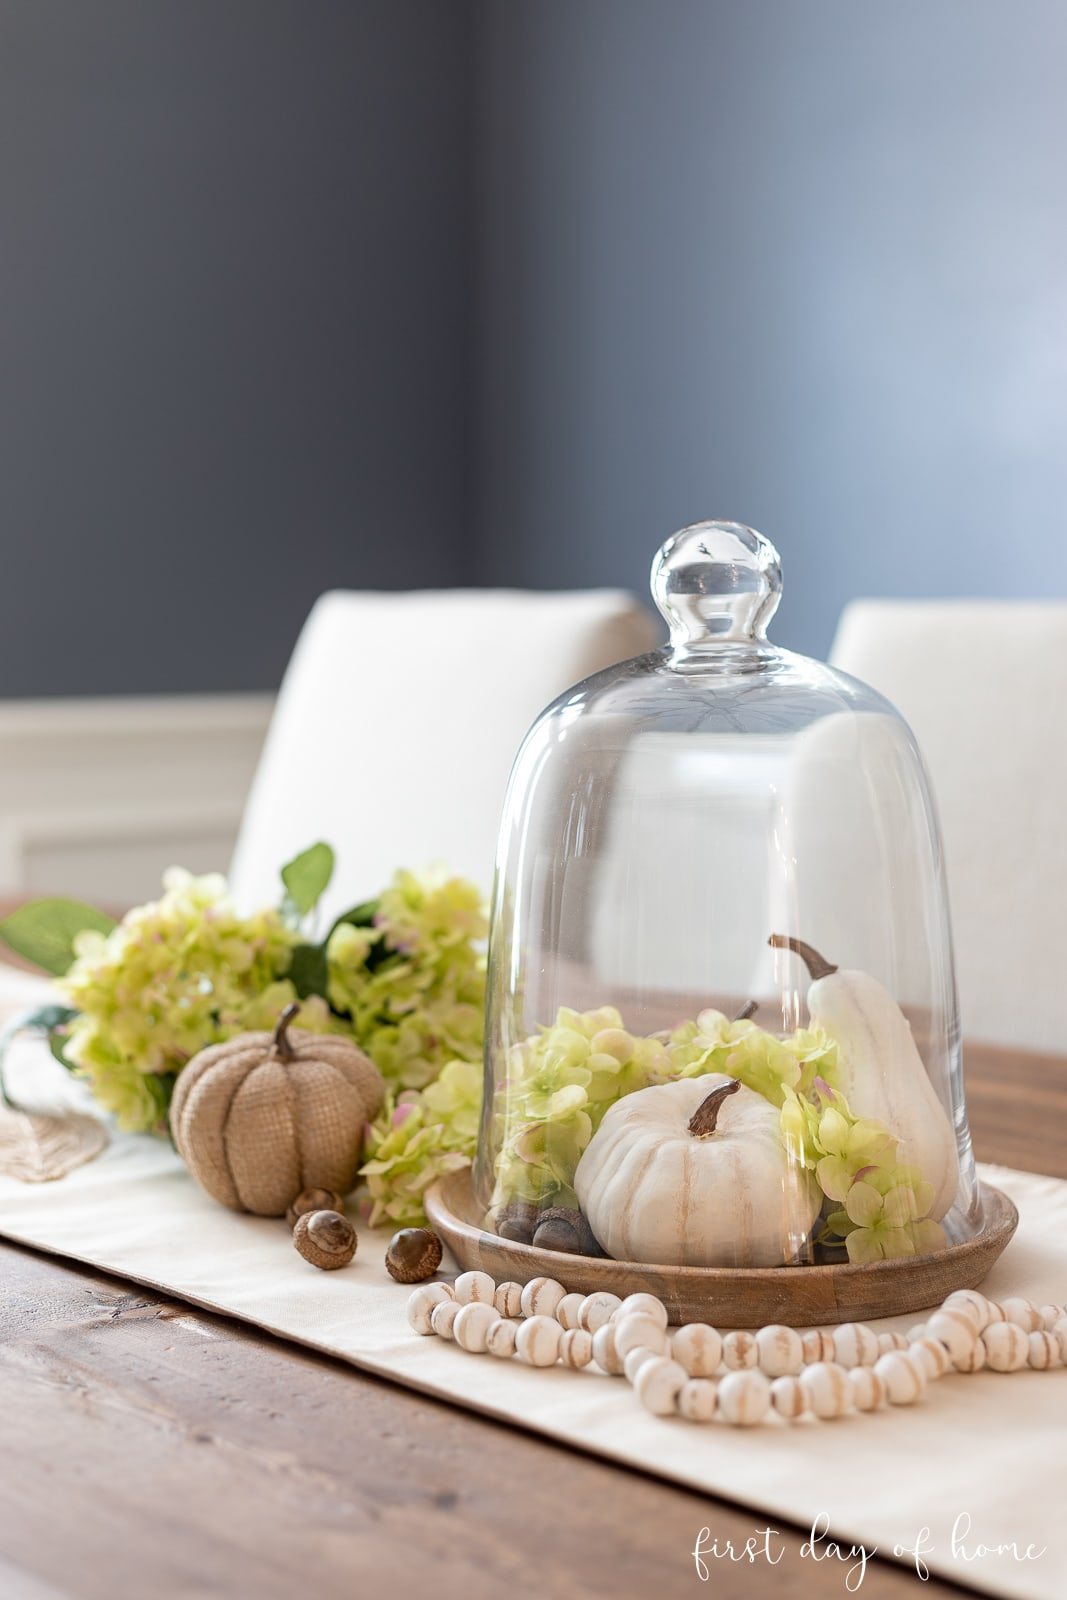 DIY fall centerpiece with glass cloche, hydrangeas, DIY baby boo white pumpkins, acorns and neutral table runner